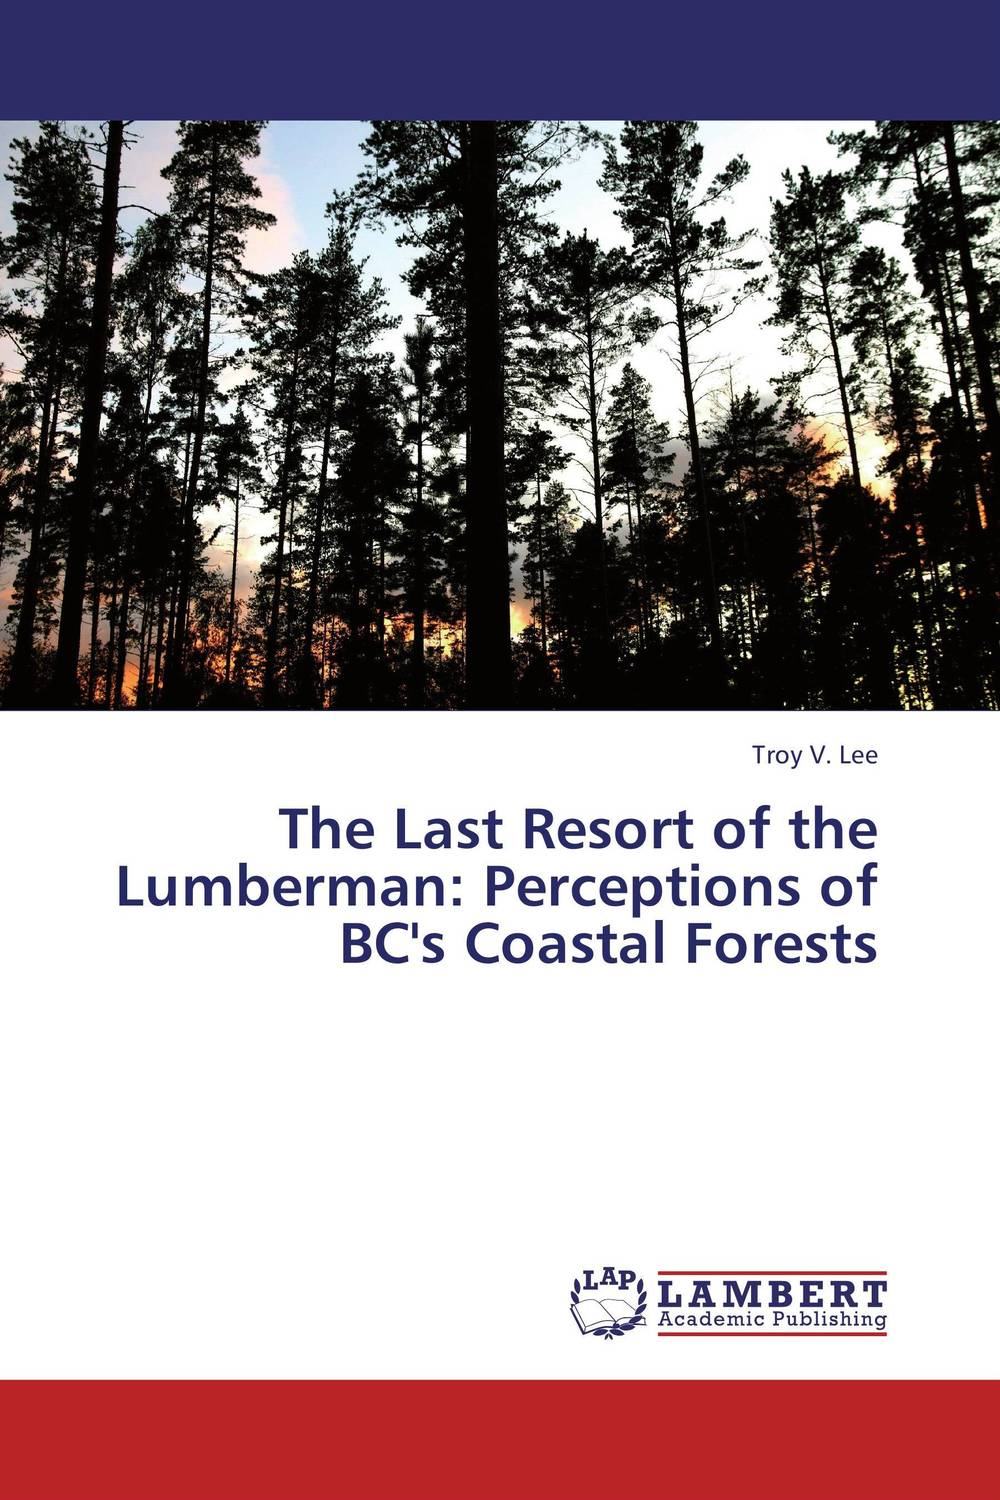 The Last Resort of the Lumberman: Perceptions of BC's Coastal Forests last card played